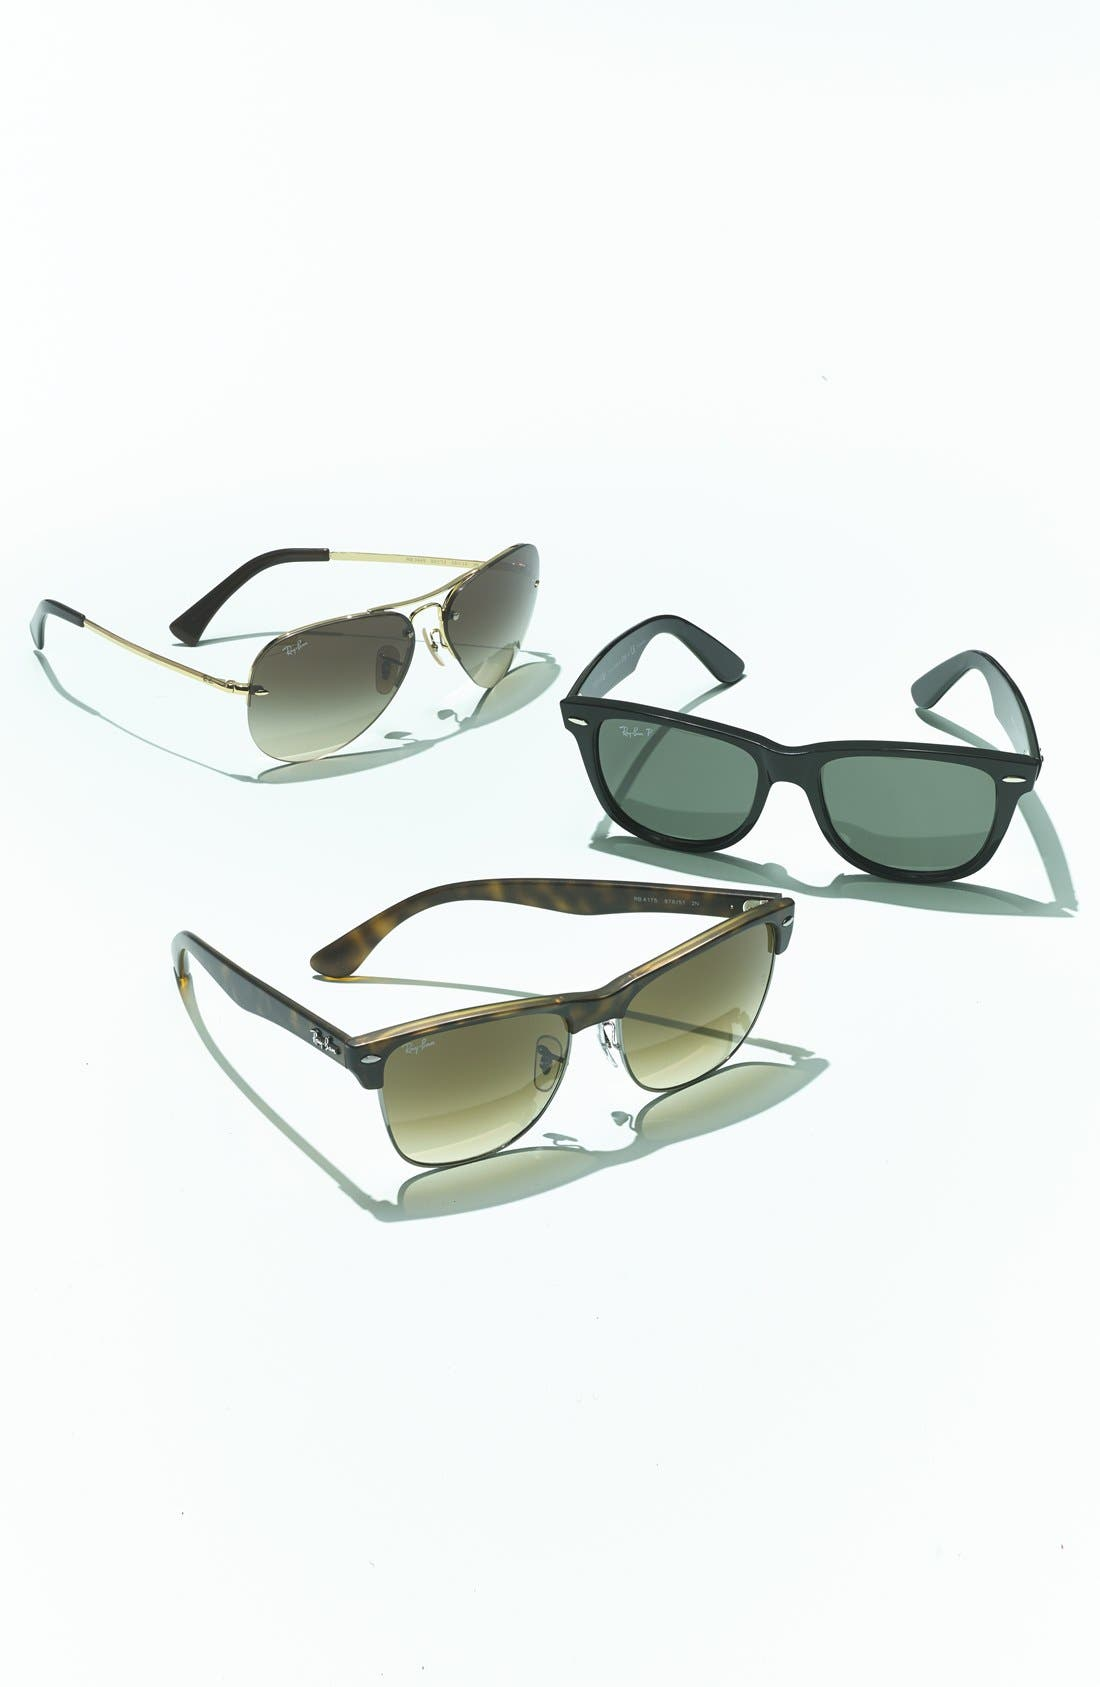 Highstreet 57mm Sunglasses,                             Alternate thumbnail 3, color,